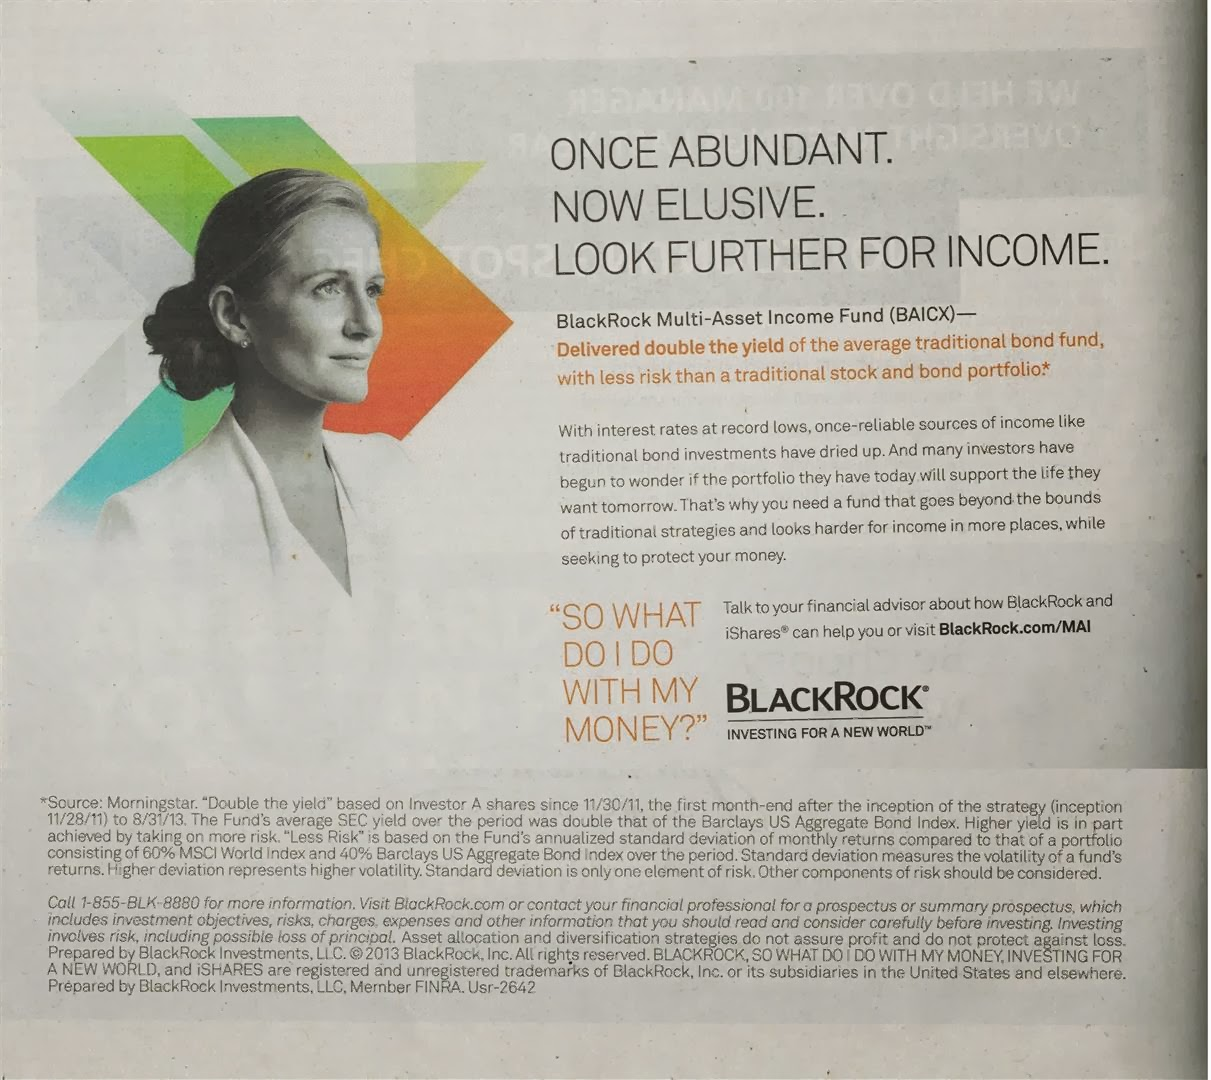 BlackRock Investment Ad